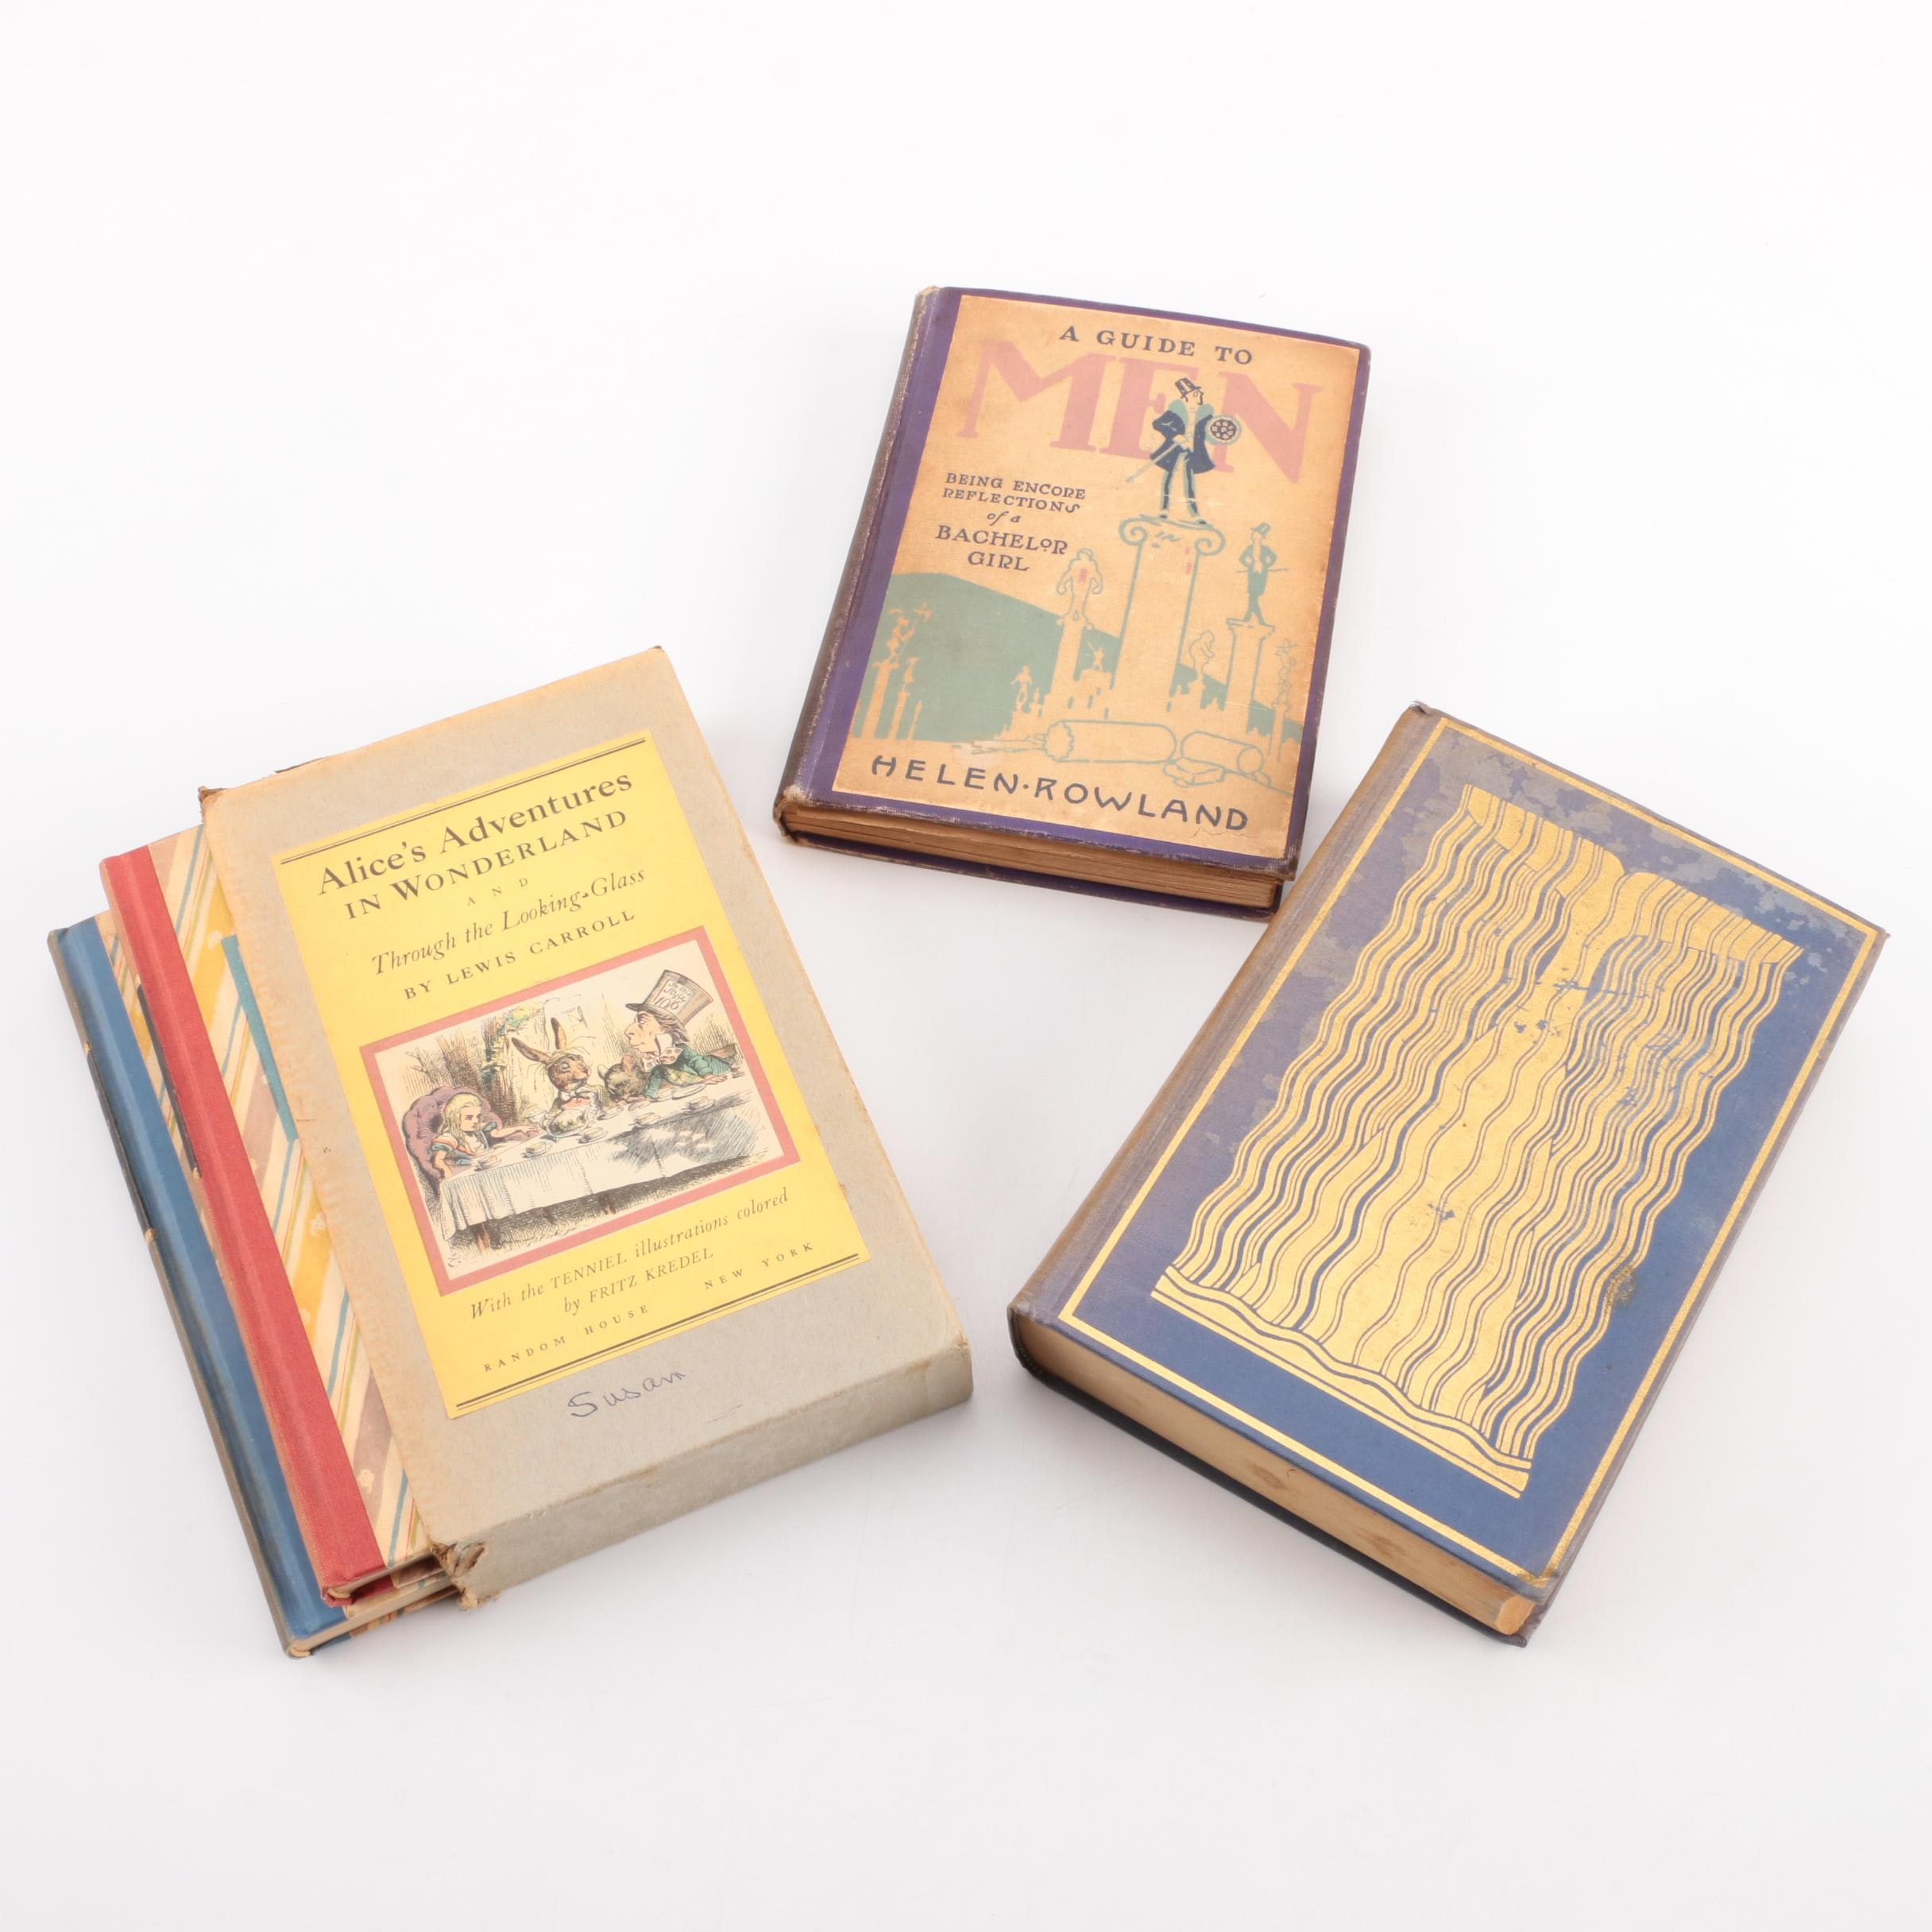 Assorted Vintage Hardcover Books